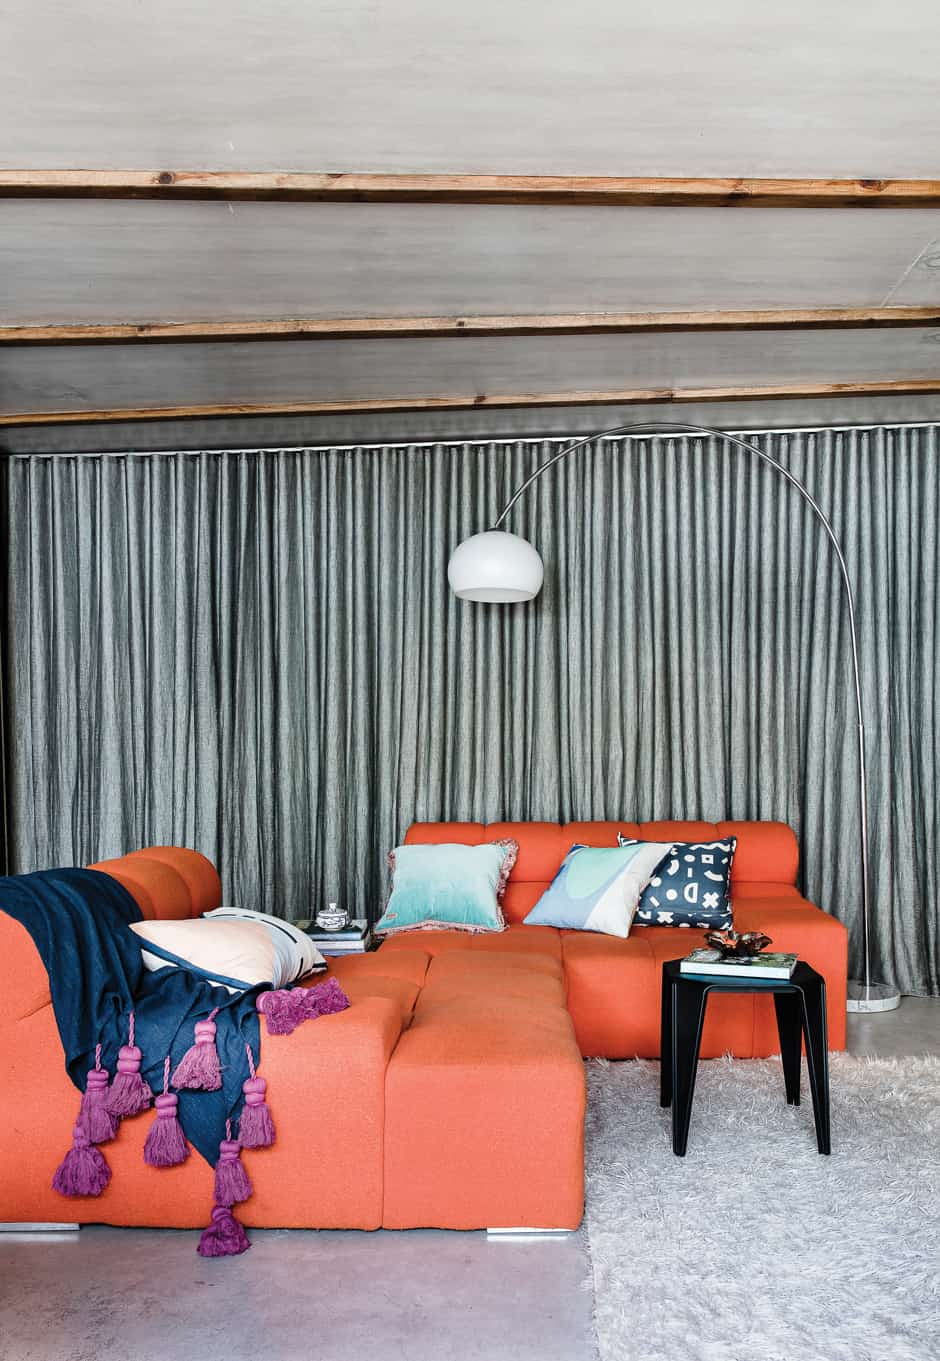 LIVING A sheer linen curtain creates a sense of privacy while letting in a little light, while the Tufty-Time sofa designed by Patricia Urquiola for B&B Italia provides a colourful retro element teamed with cushions from Life Interiors and a Kip & Co throw. On the shelf is the self-portrait by Susanna's mother (far right) that inspired Susanna to take the plunge into illustrating; the purple piece beside it is by New Zealand artist Tracey Tawhiao.